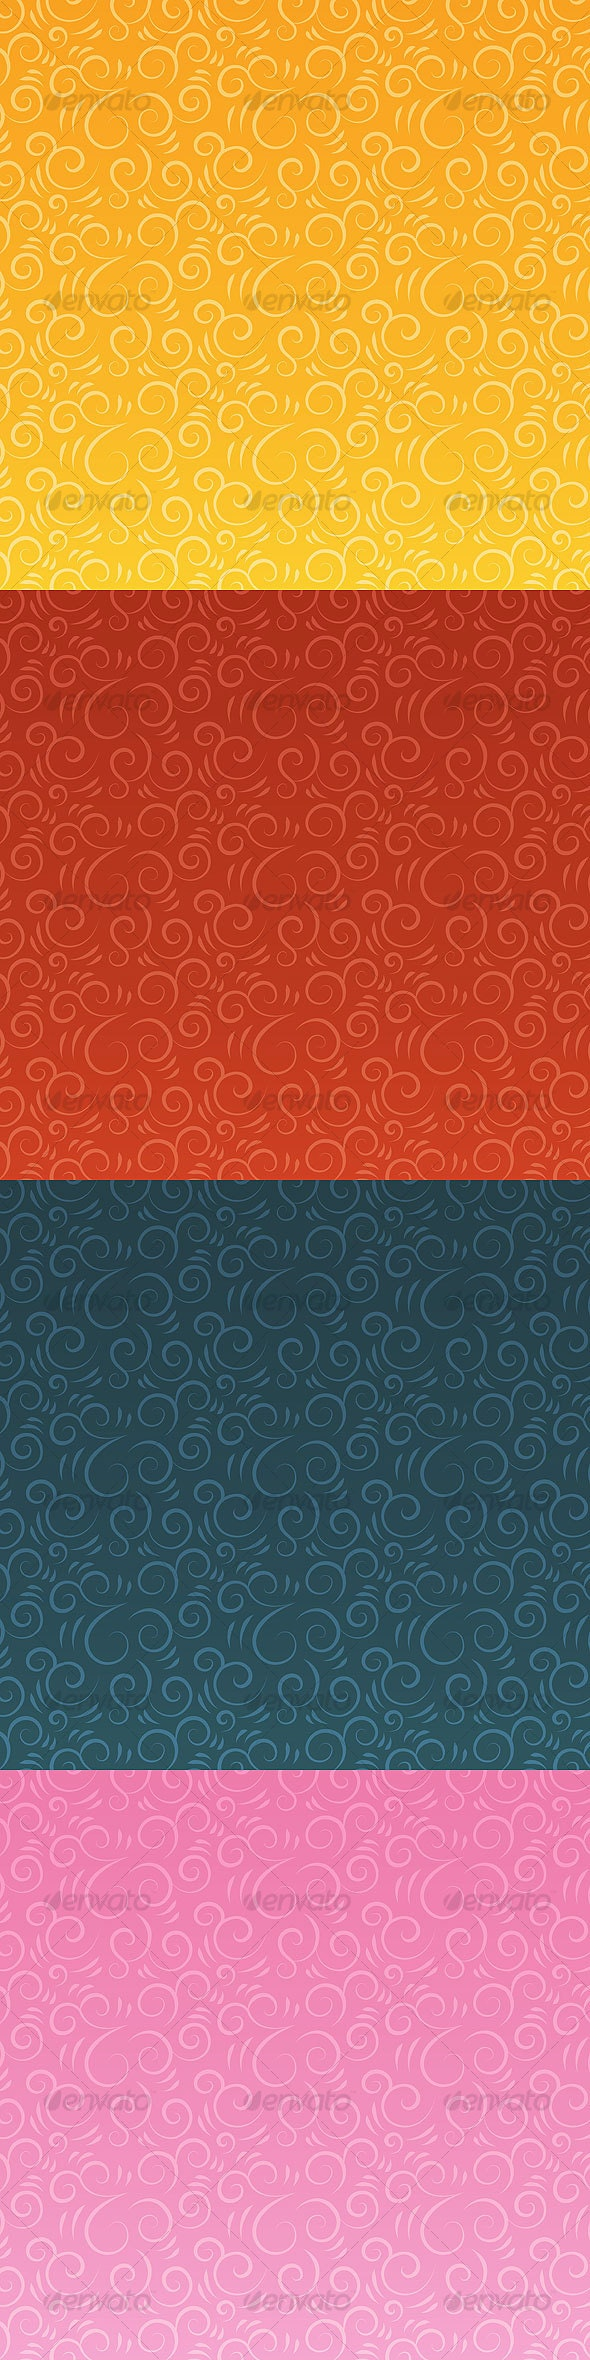 Swirlush vector patterns - Patterns Decorative